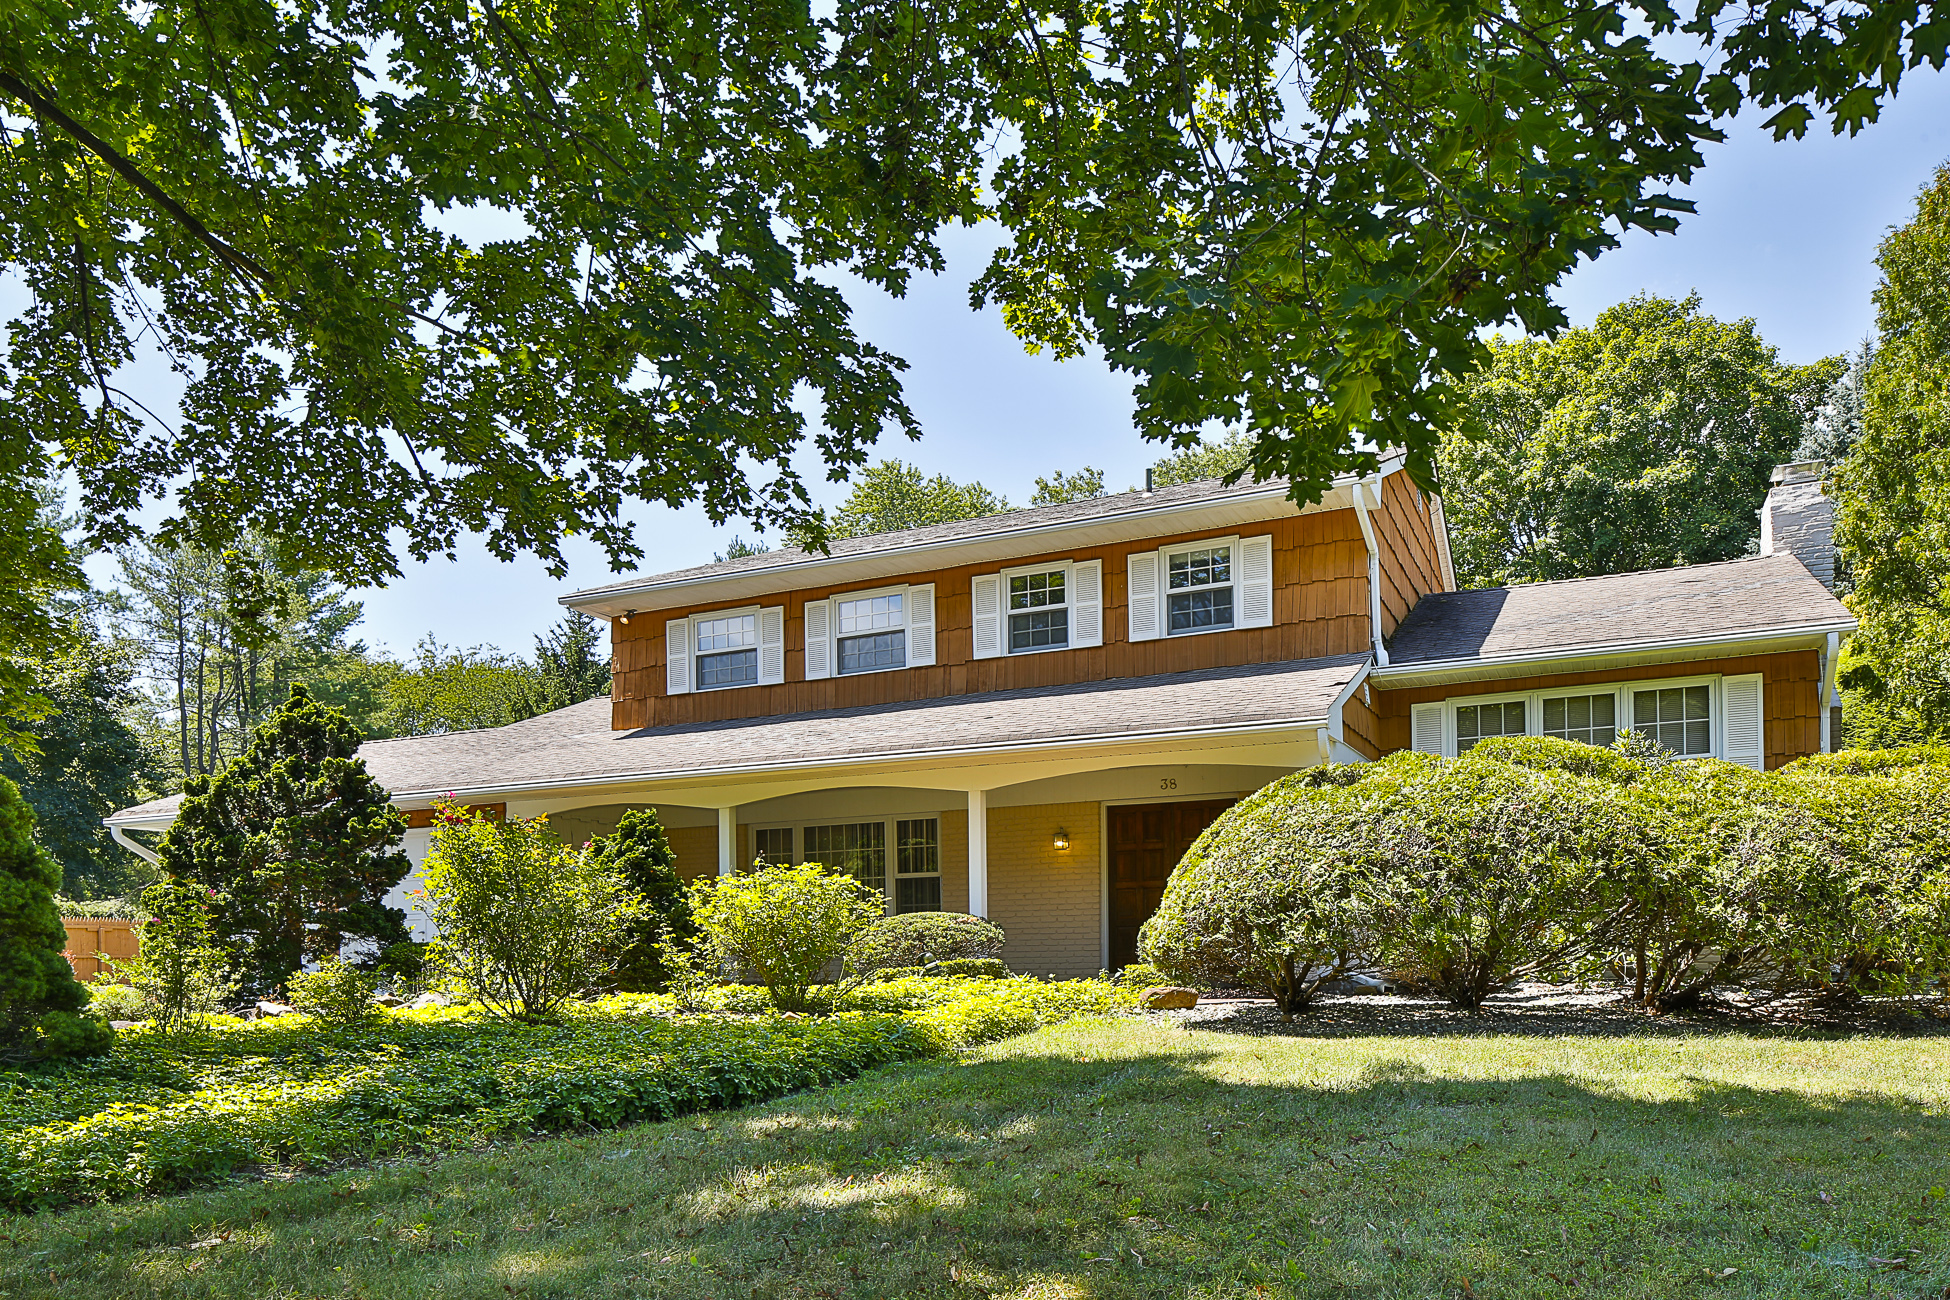 Property For Sale at Princeton Ivy Estates Colonial - West Windsor Township